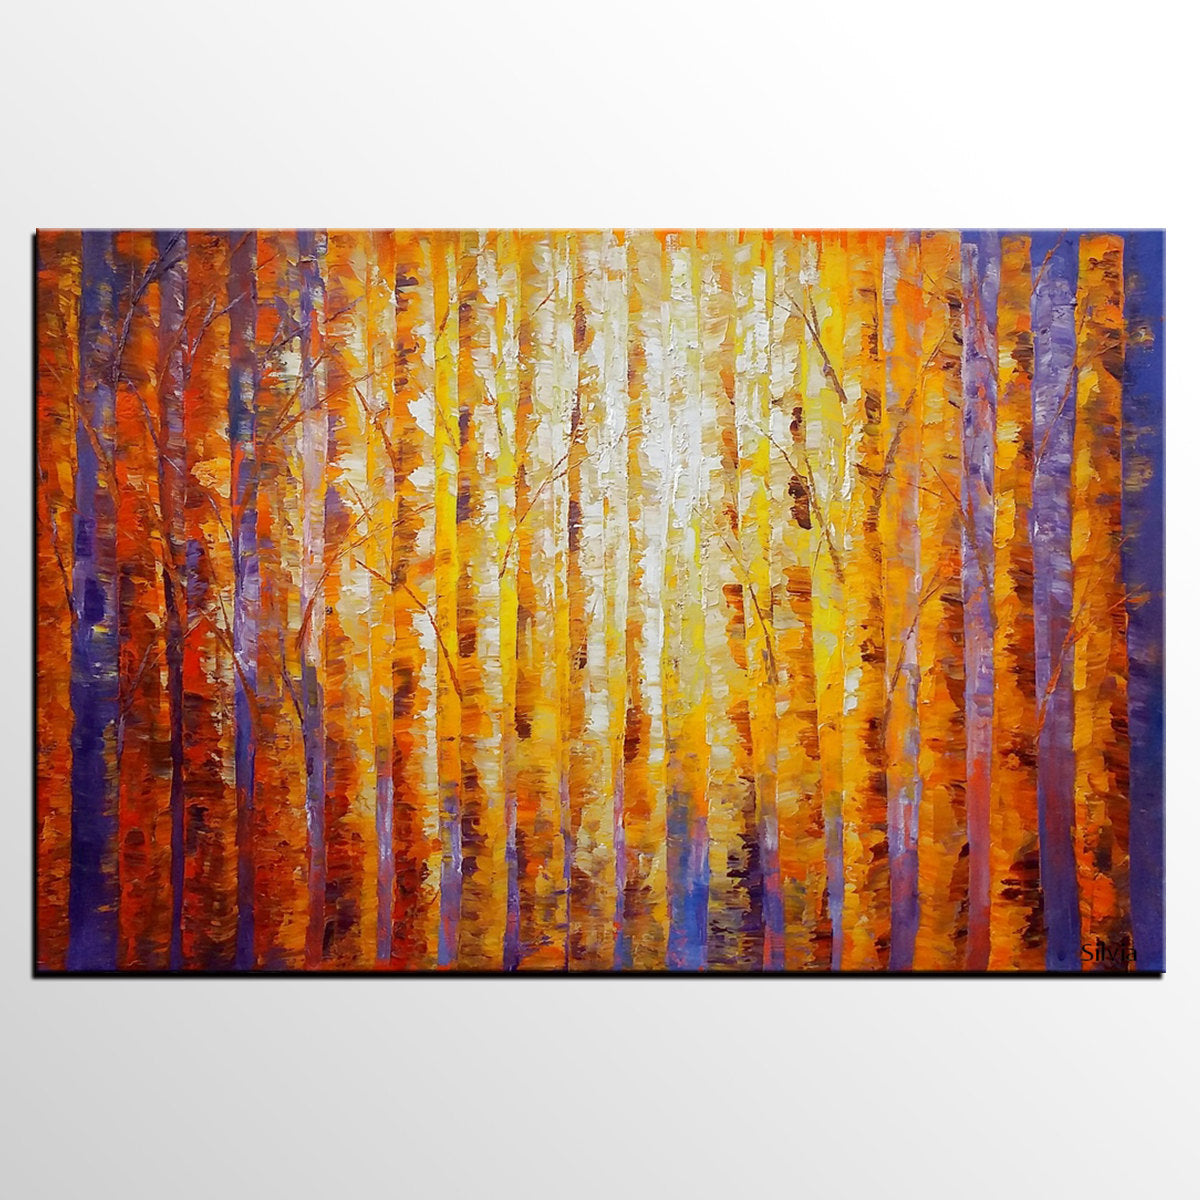 Birch Tree Painting, Original Oil Painting, Abstract Landscape Art, Canvas Art - Silvia Home Craft